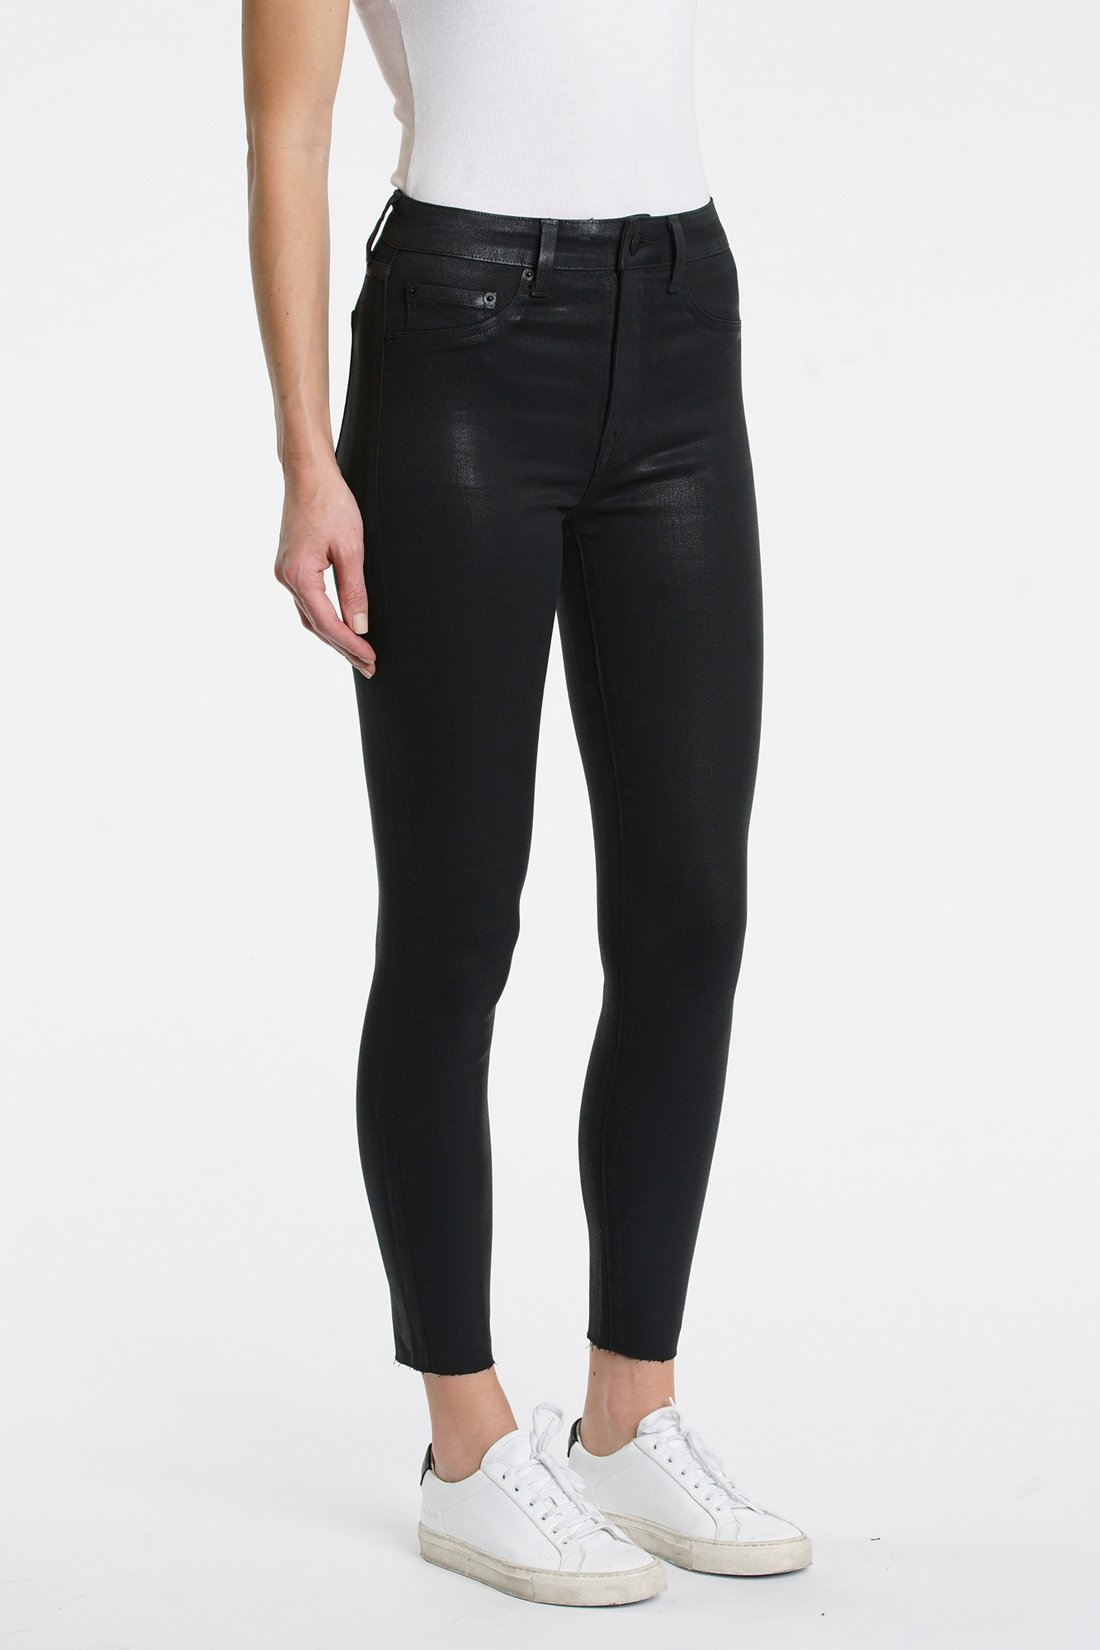 Pistola Aline High Rise Jeans in Coated Black